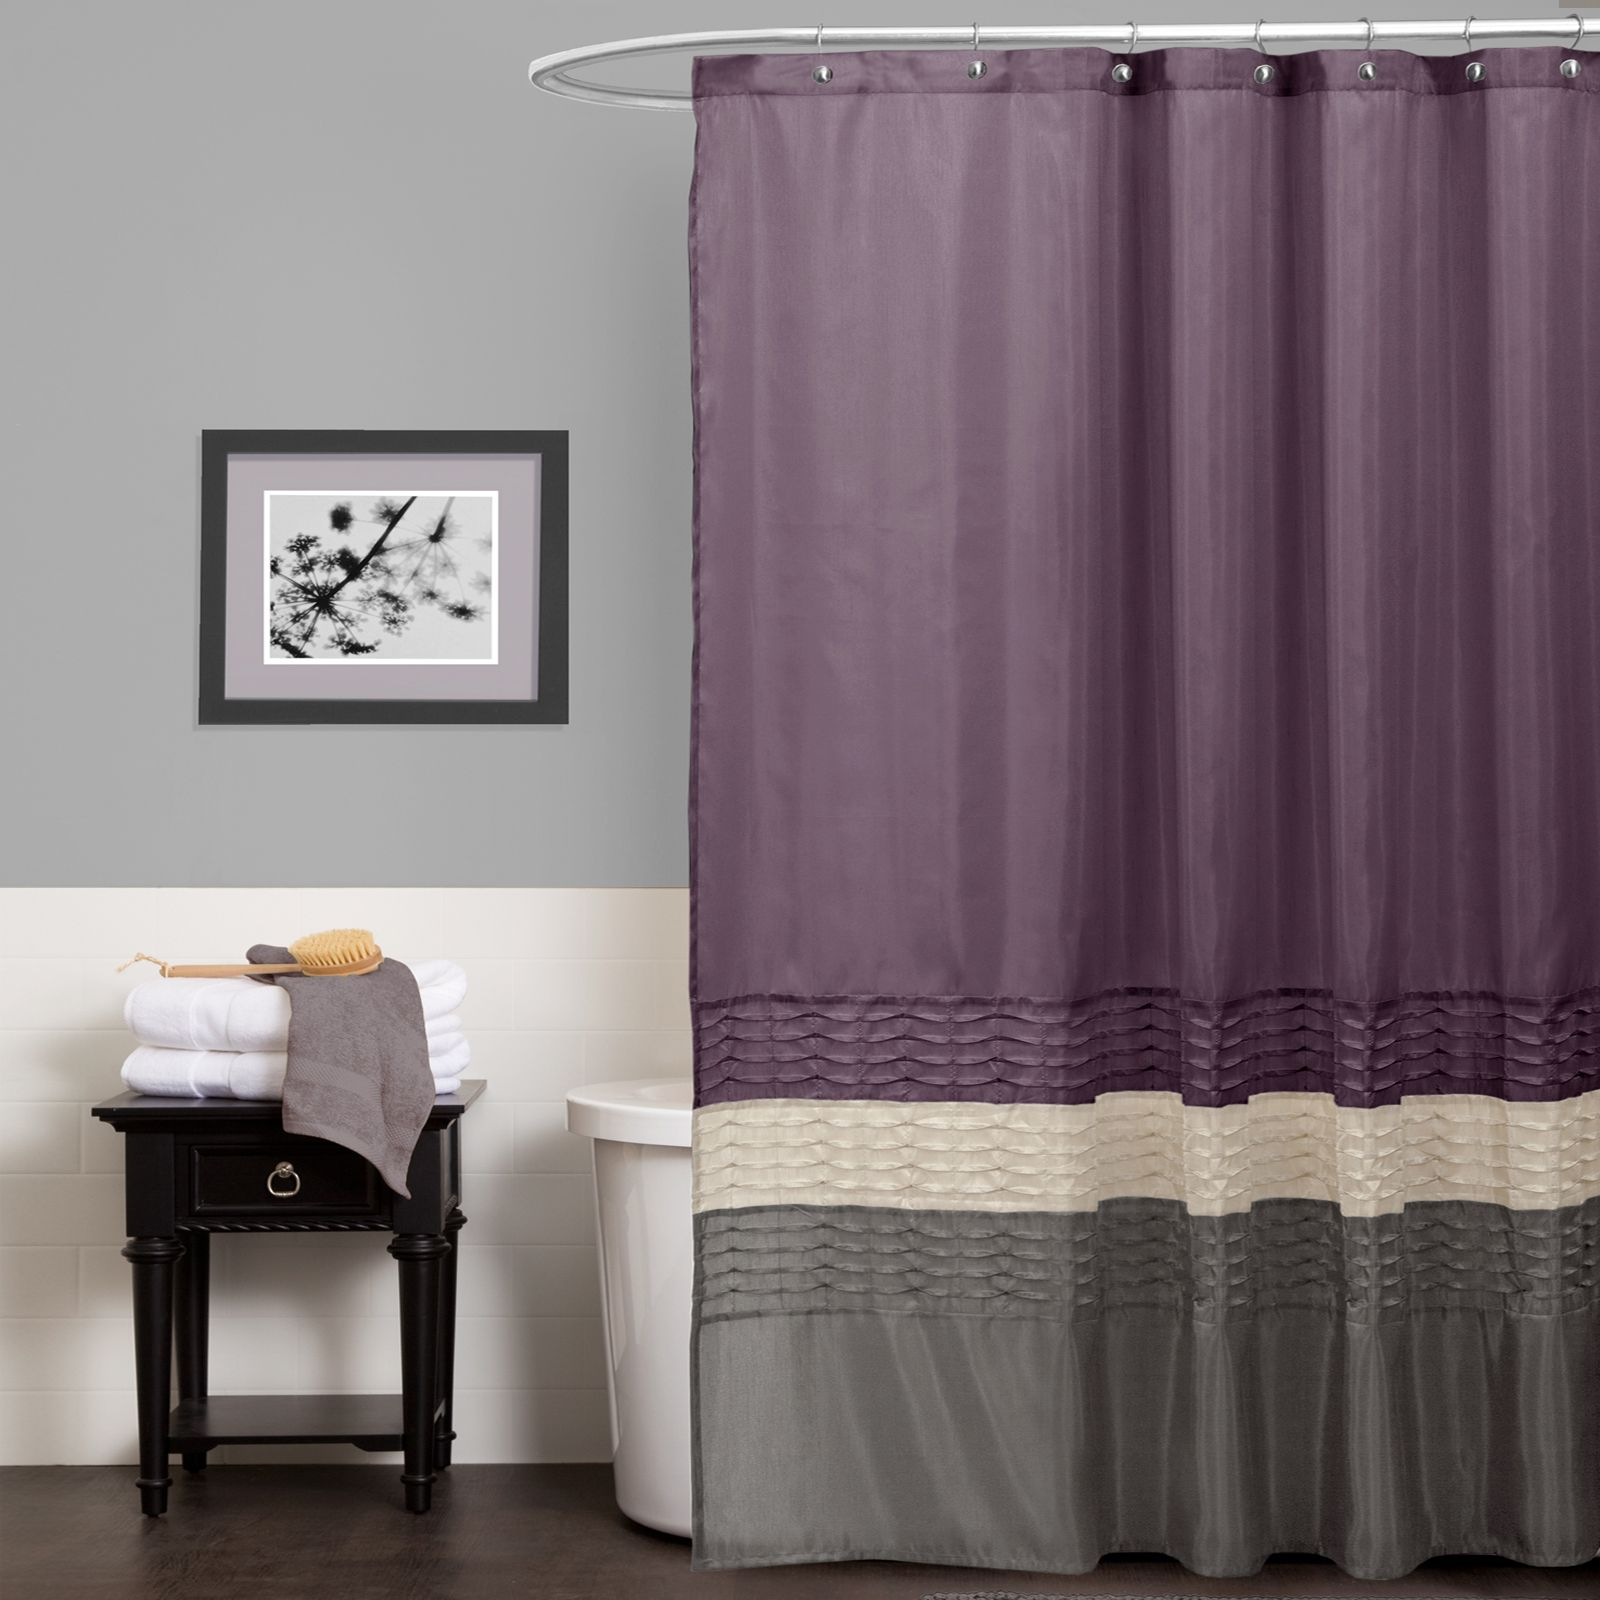 Delightful Lush Decor Mia Purple/Gray Shower Curtain